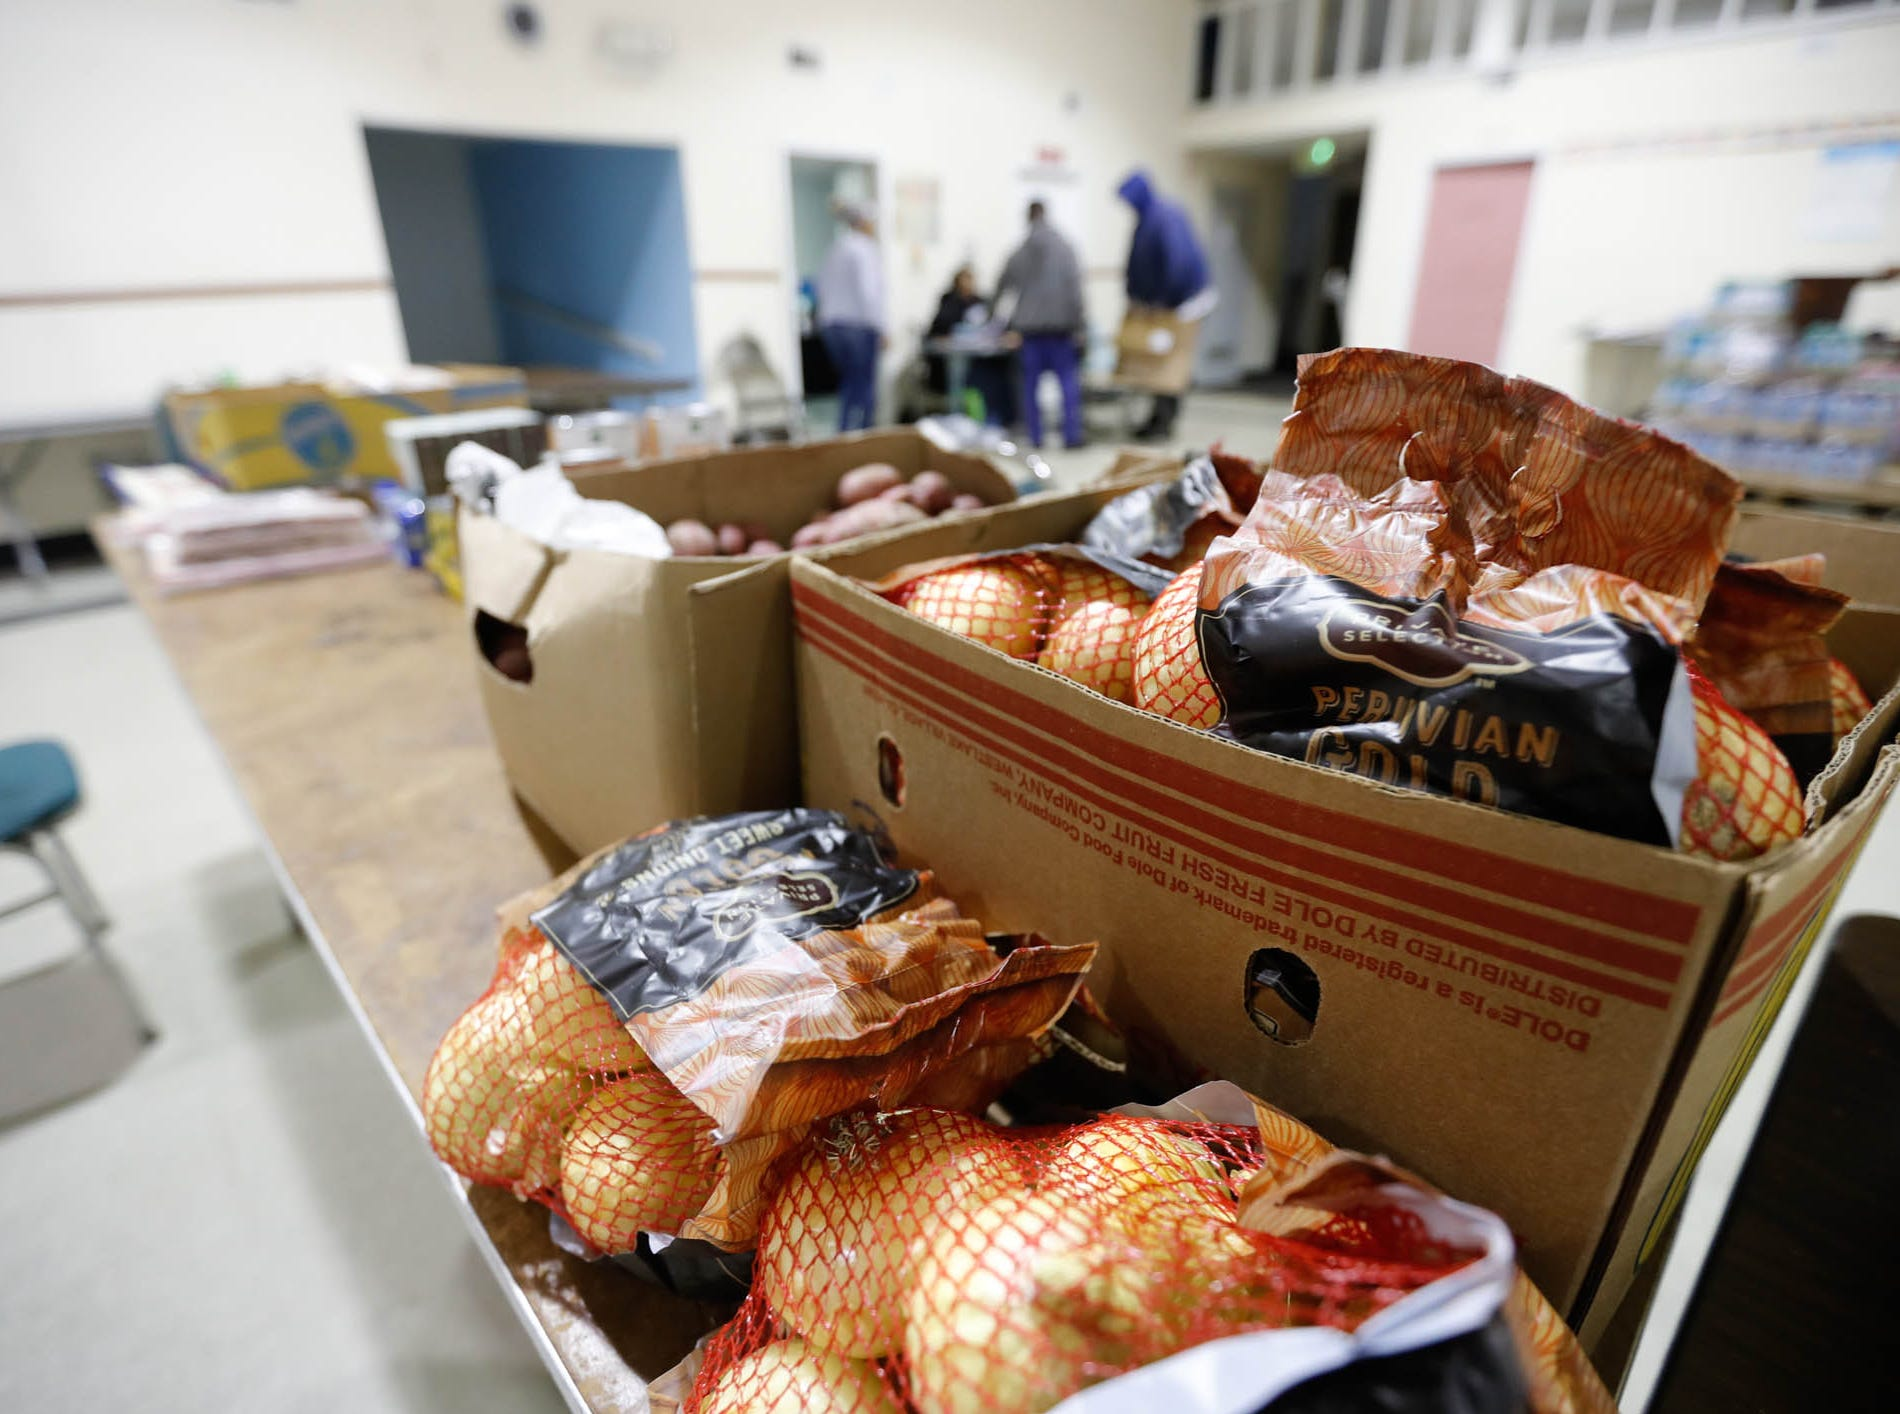 Food is ready to give away at Breeding Tabernacle Church which has started a new food pantry with later hours for federal employees who are affected by the government shutdown, Thursday, Jan. 23, 2019. The new pantry will be open on Wednesdays, 5pm-7pm, at the Breeding Tabernacle Church, 3670 North Leland, Indianapolis Ind., until the government shutdown ends.